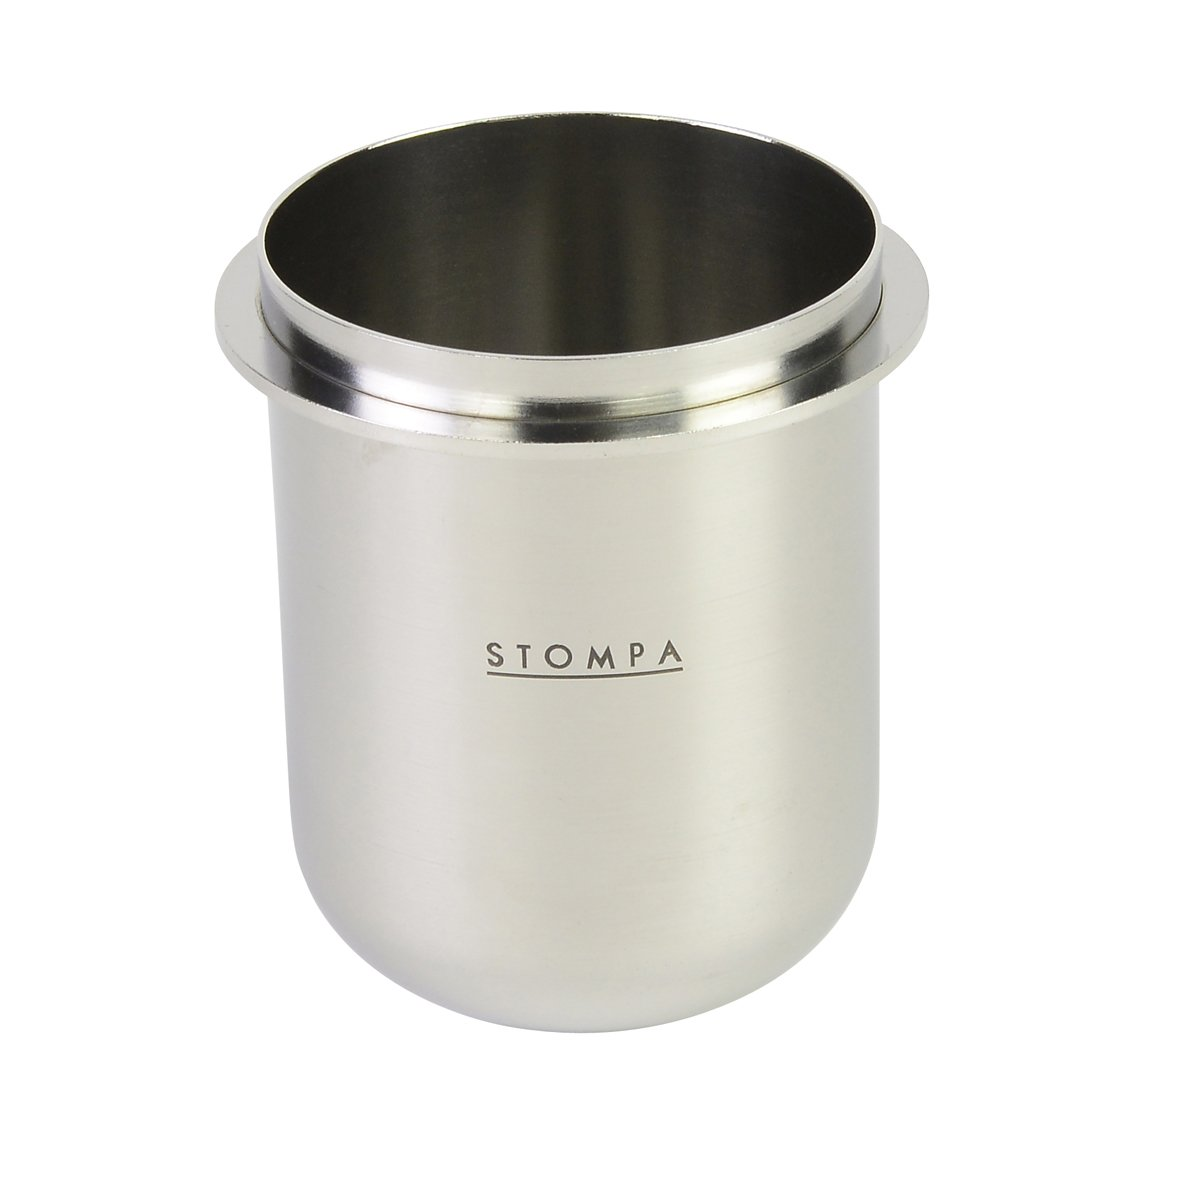 Stompa No.43 Dosing Cup - Grinder to Group - Suits Mahlkonig EK Series Grinders by Stompa (Image #3)